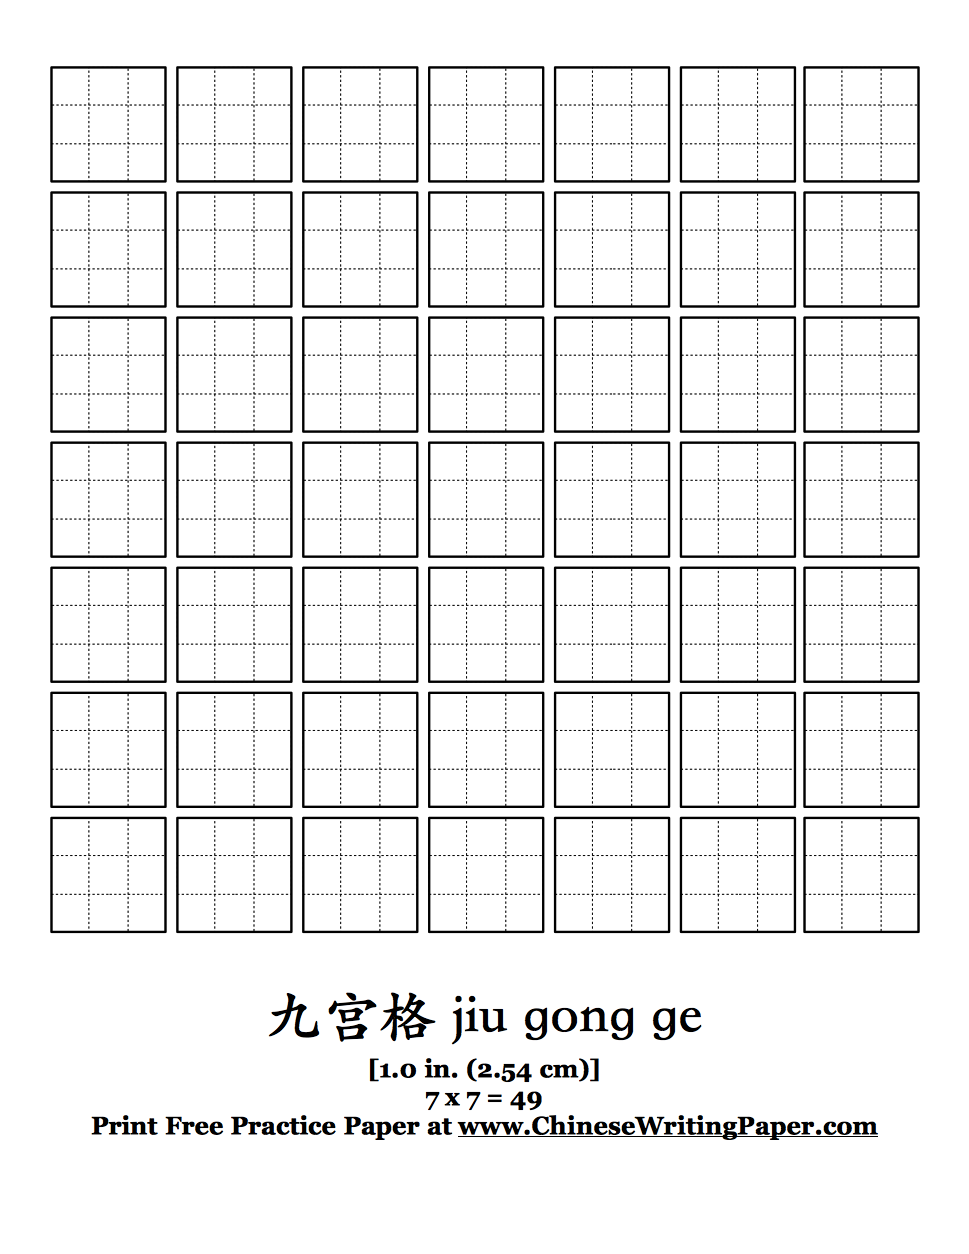 chinese writing paper, png, jiugongge, 九宫格, 1 in. (2.54 cm)